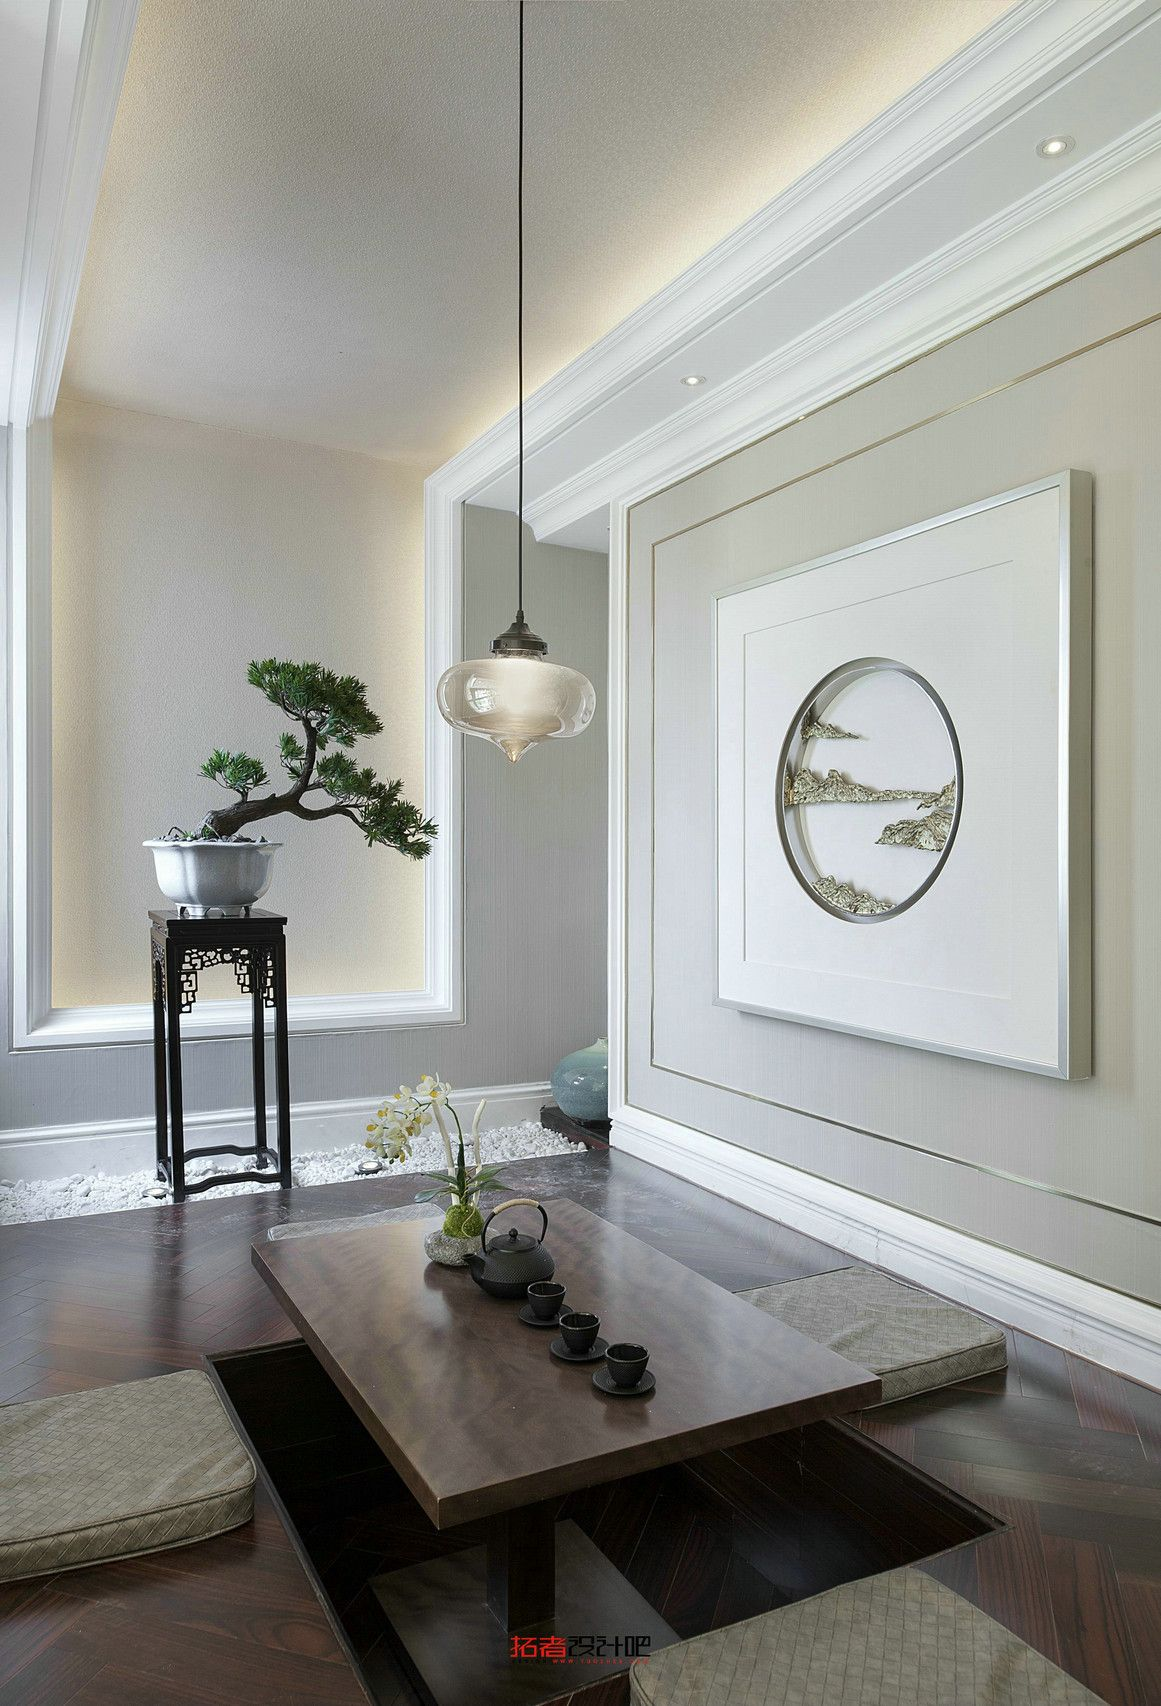 Pin by NOLAN Zi on Entrance 玄关 | Pinterest | Moldings, Lights and ...